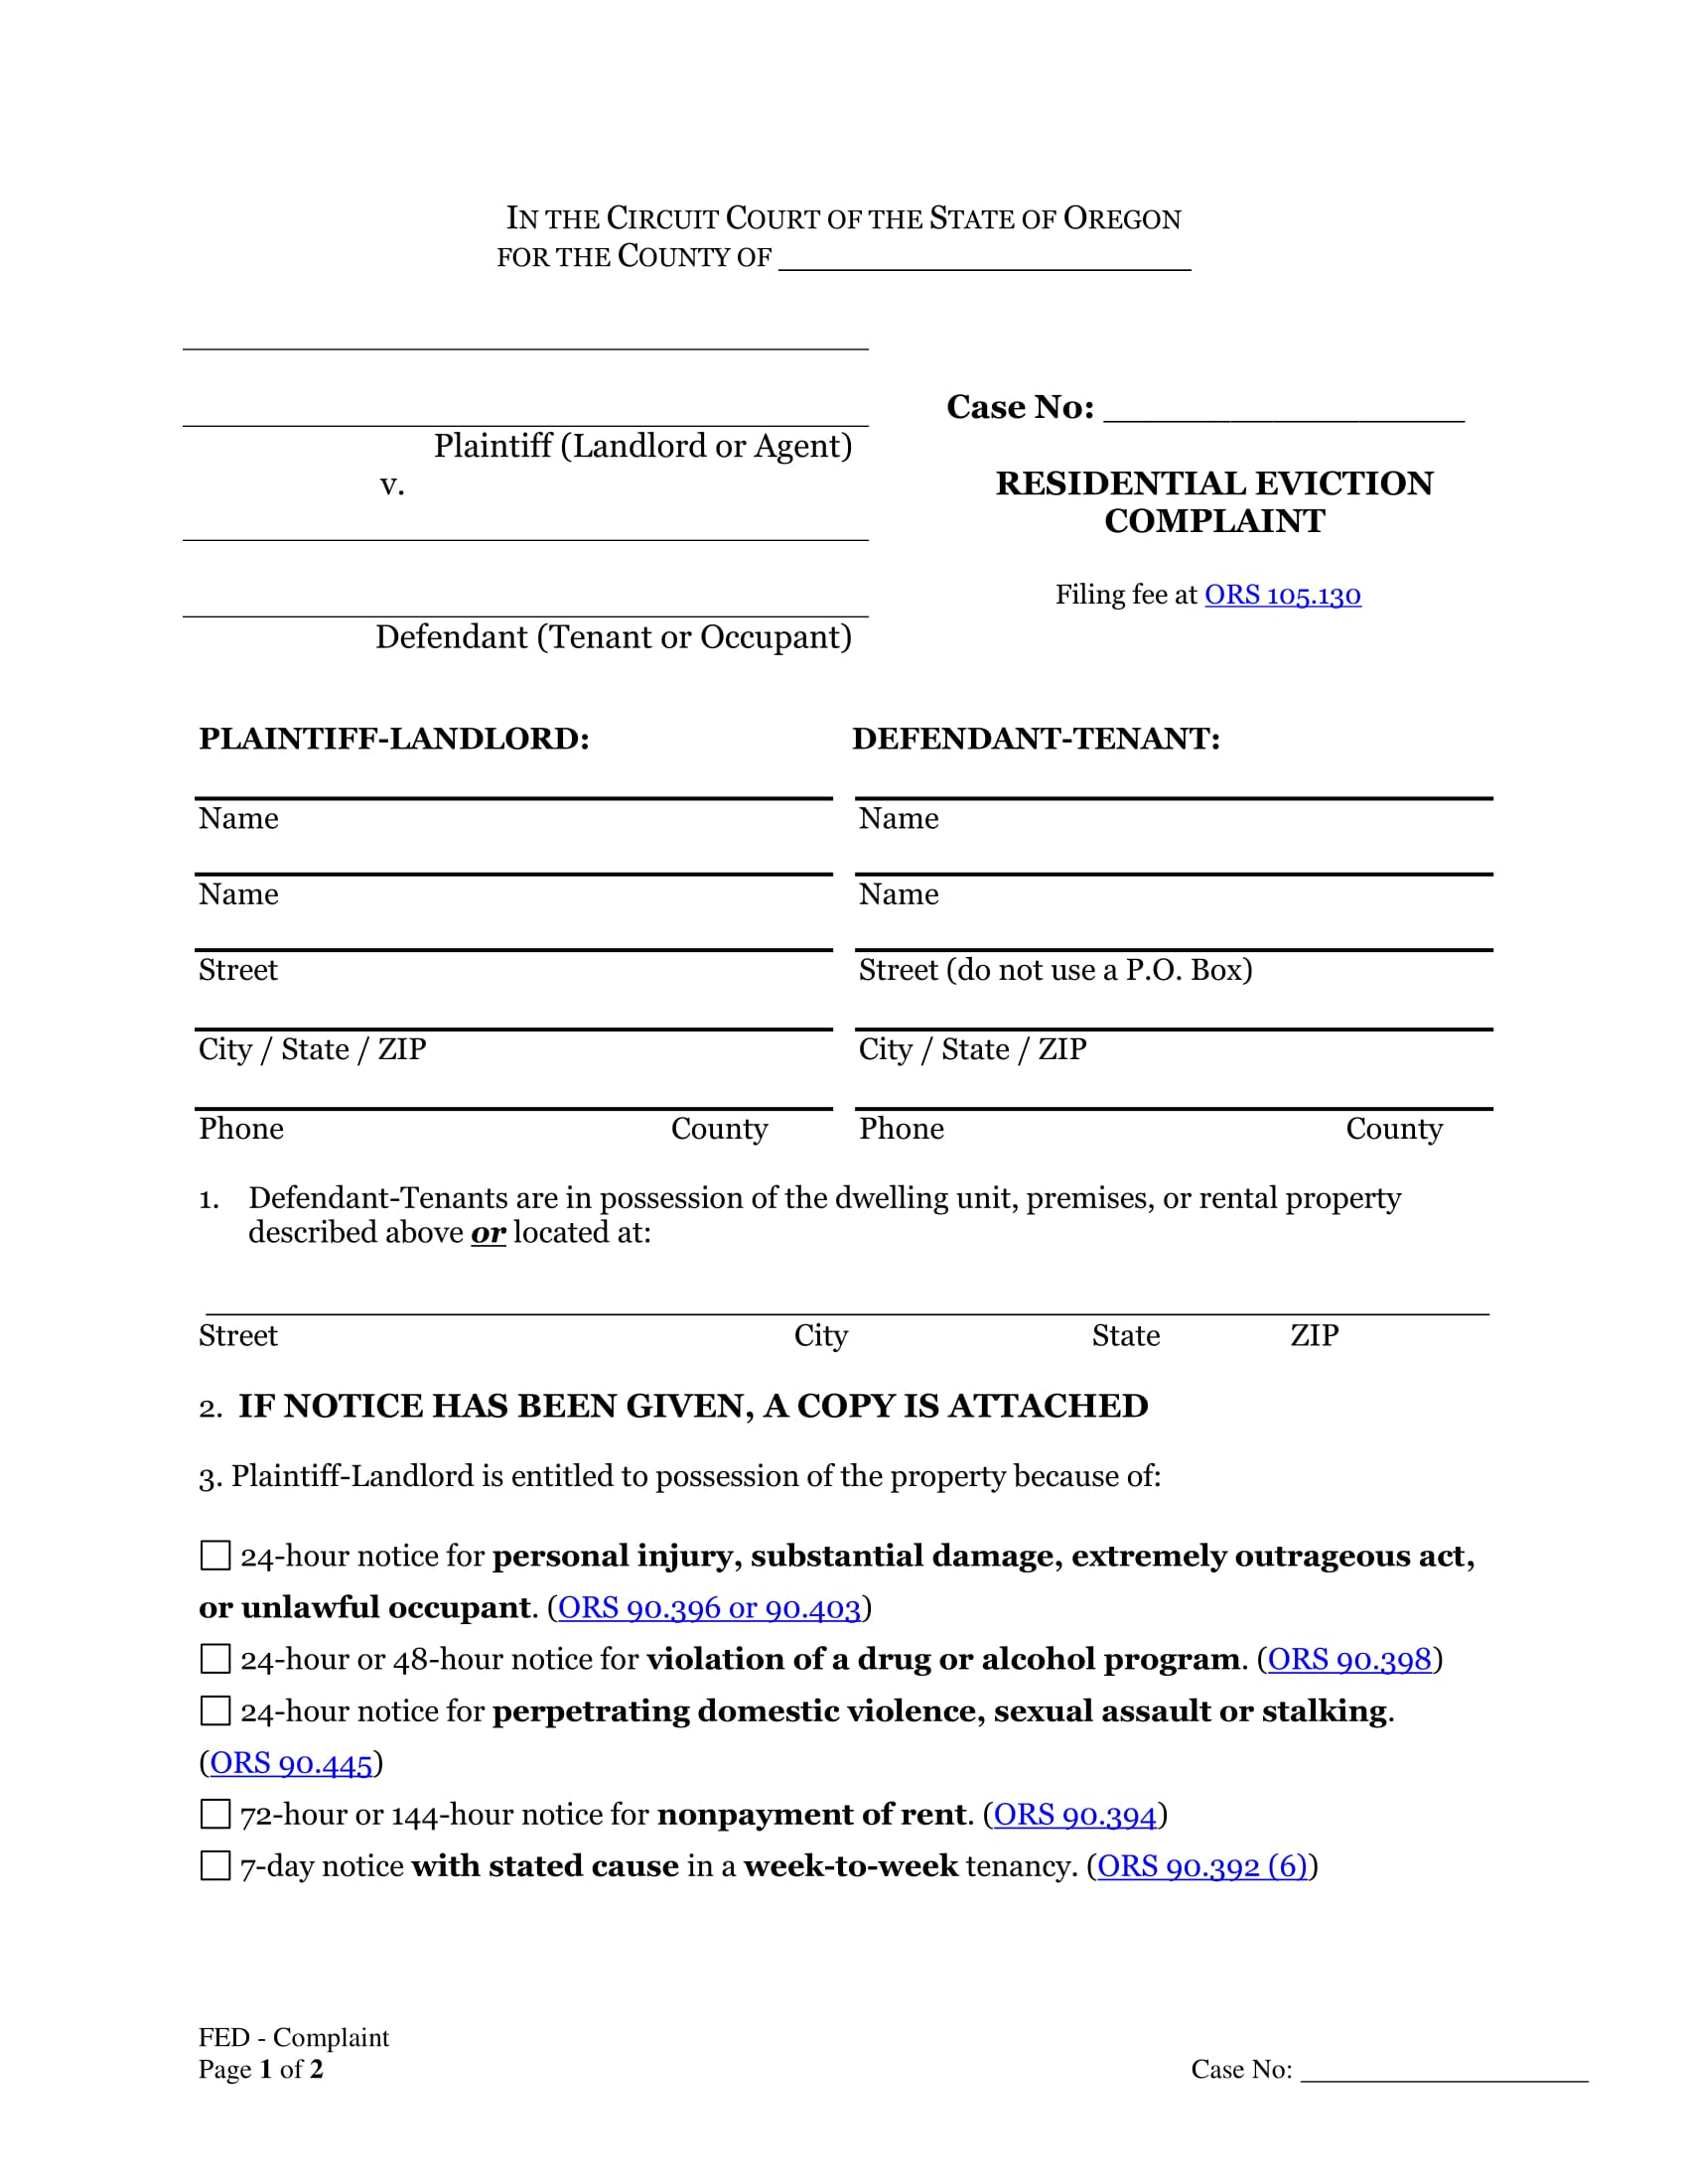 residential eviction complaint form 1